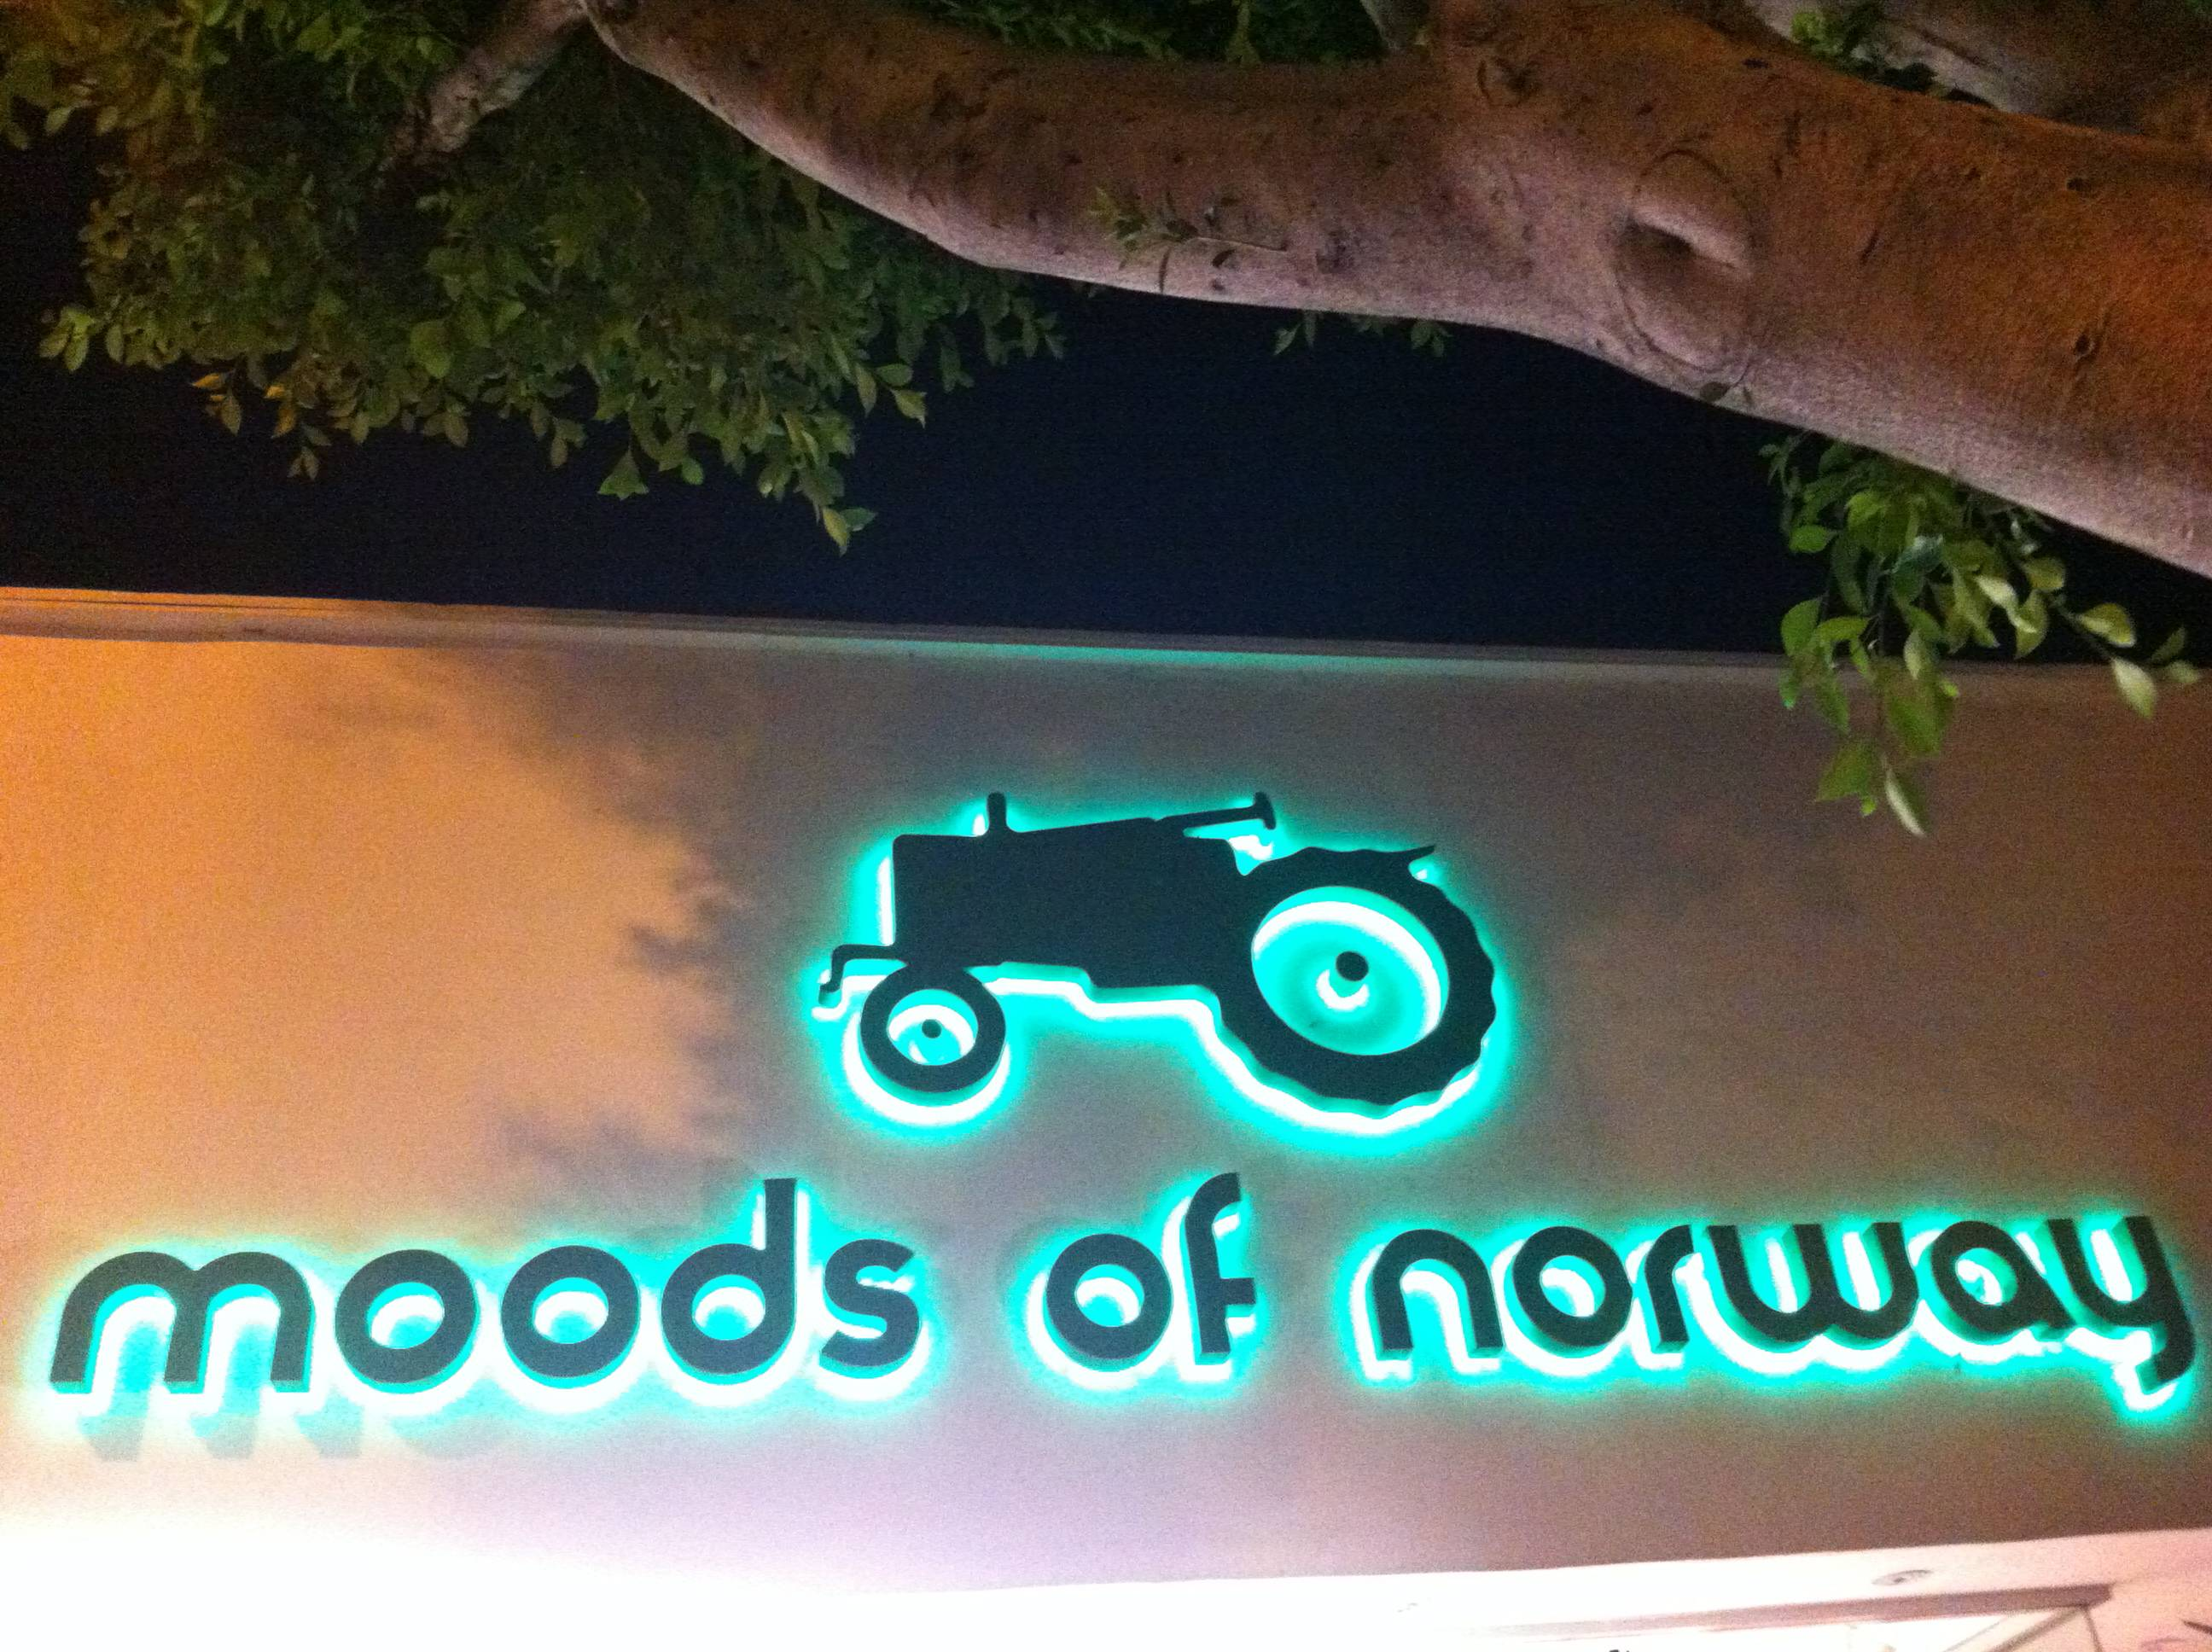 Moods of Norway Store